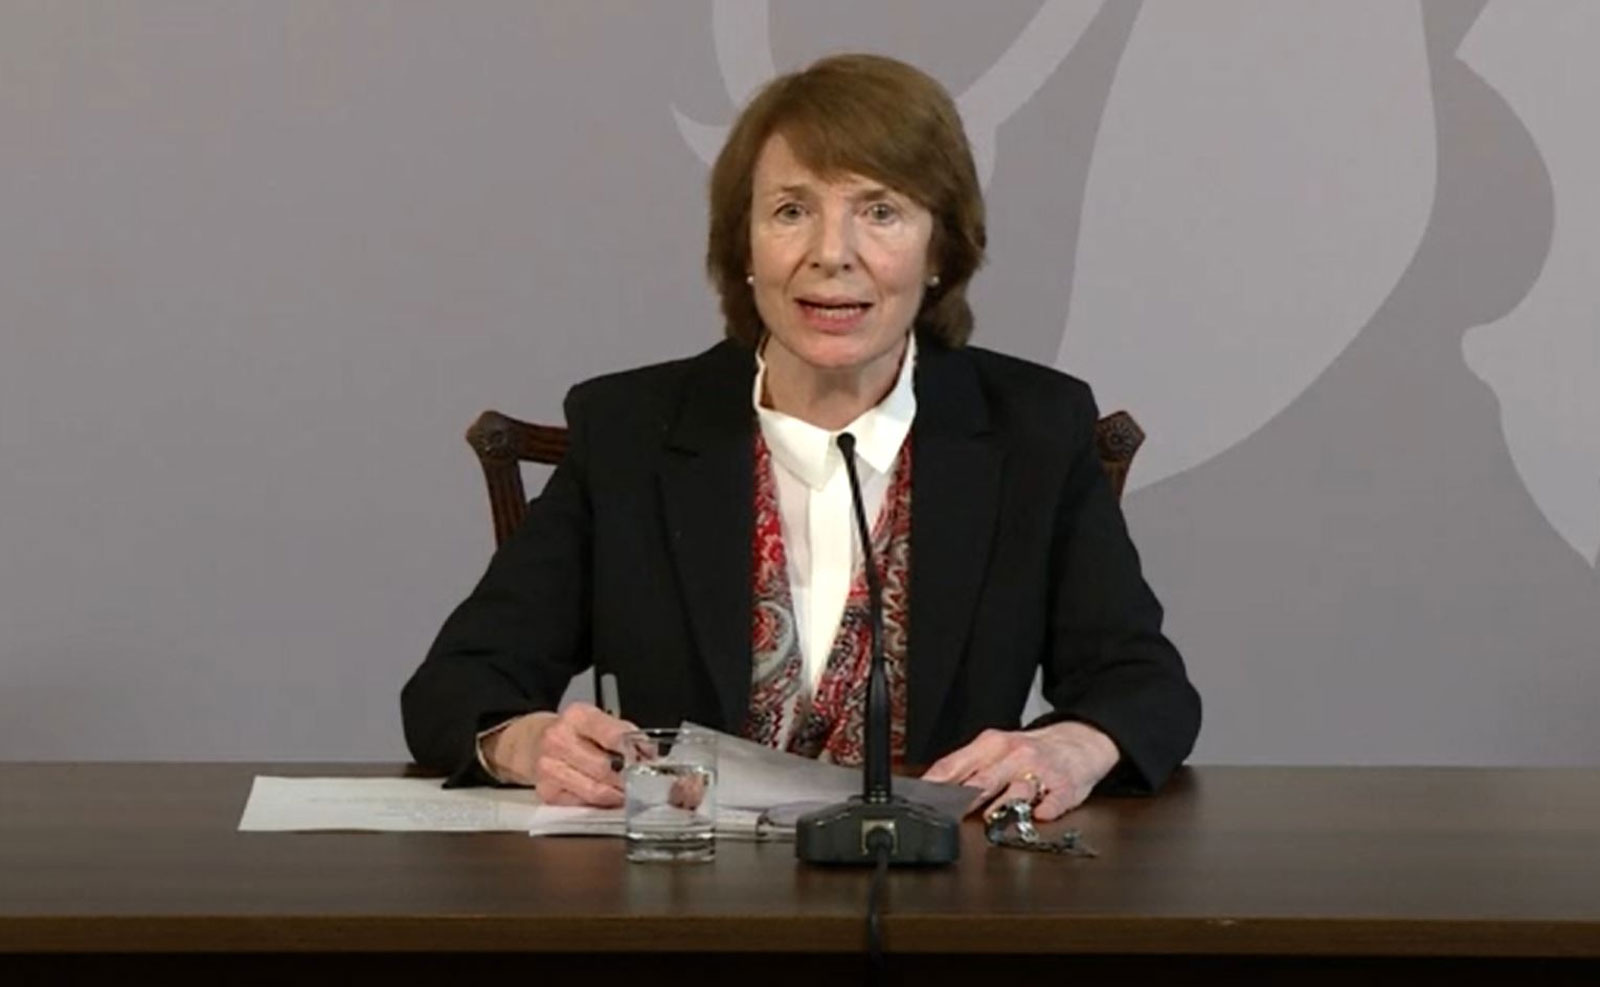 Dr. June Raine, MHRA chief executive, speaks at a press briefing in London on December 30.